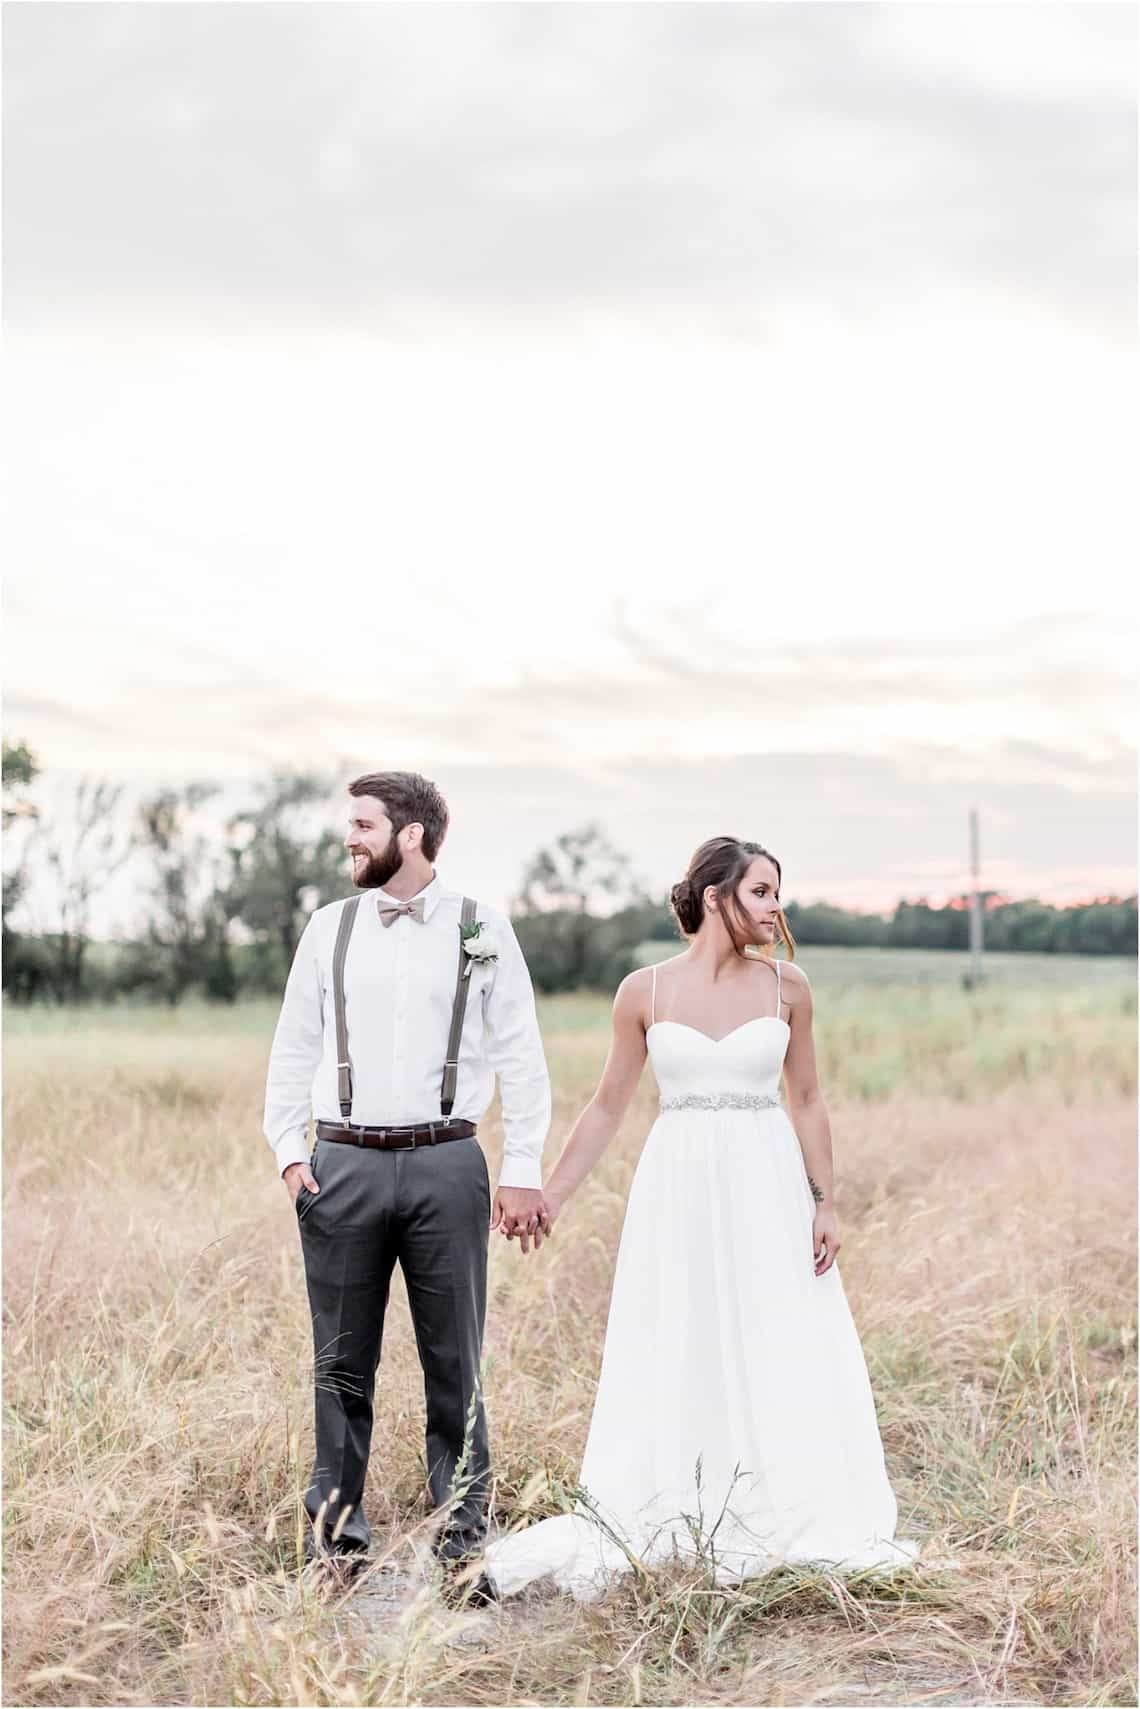 Bride and Groom Looking Away in Middle of Field